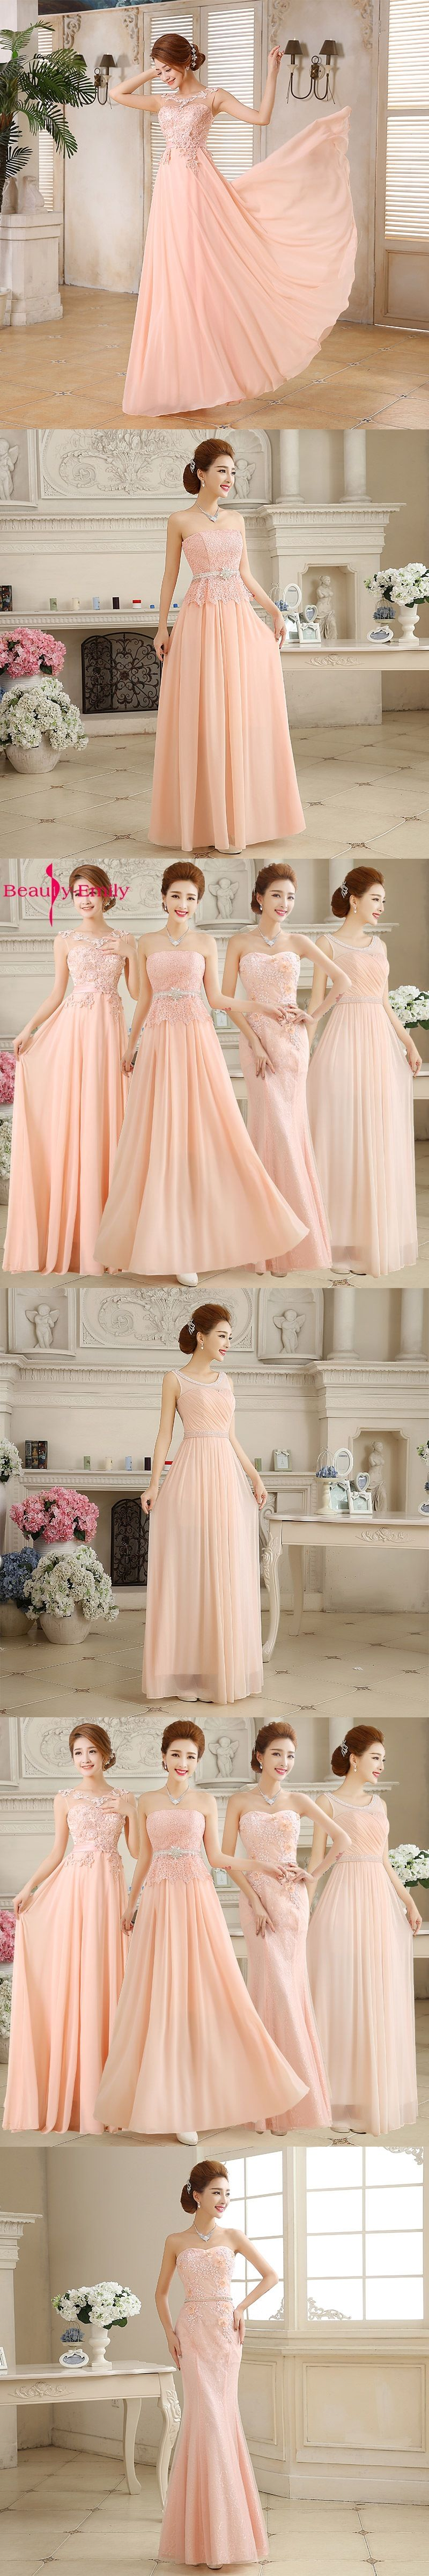 Beauty-Emily Pink Wedding Party Lace Bridesmaid Dresses 2017 Long Vestidos  De Noiva Winter Dress 6fcc0c8c5309